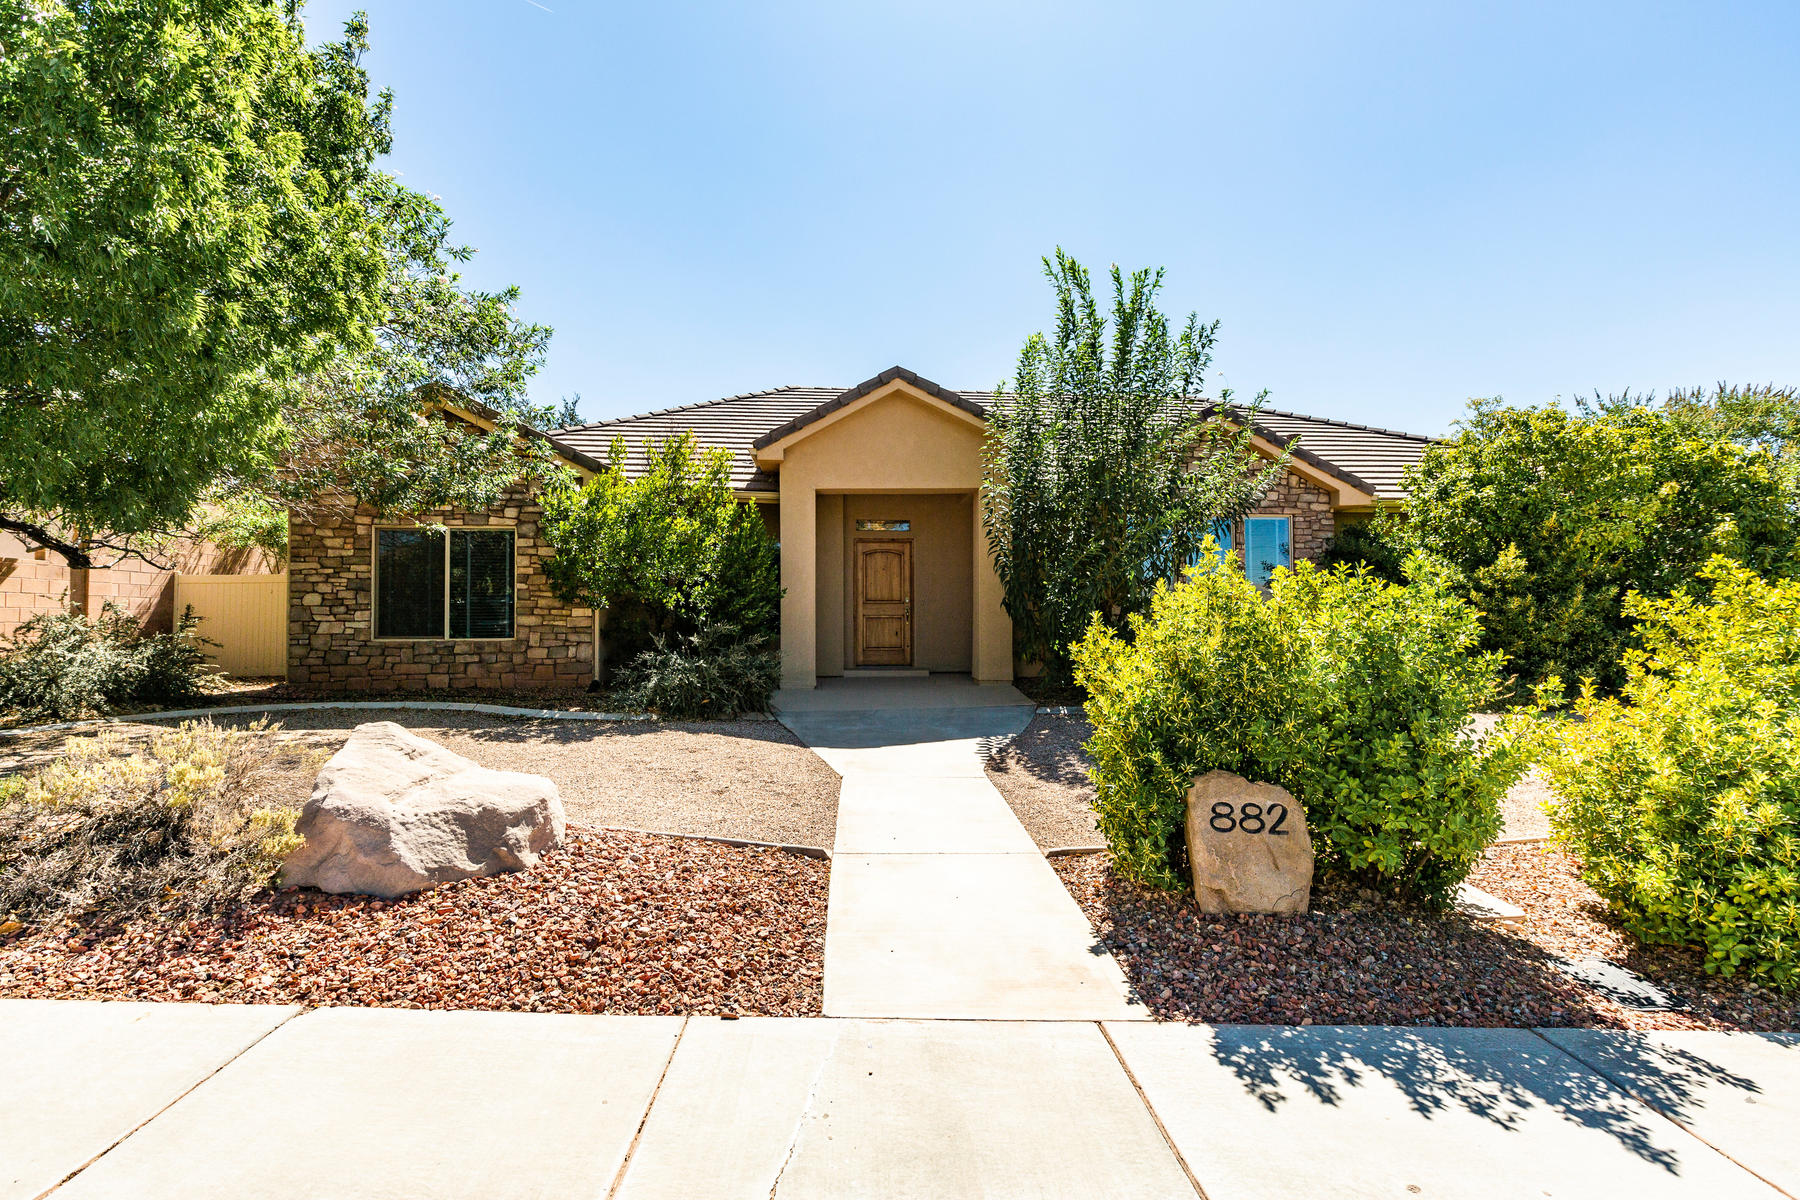 Single Family Homes for Sale at Newly Painted Gem In Silver Falls 882 E Coyote Drive, Washington, Utah 84780 United States